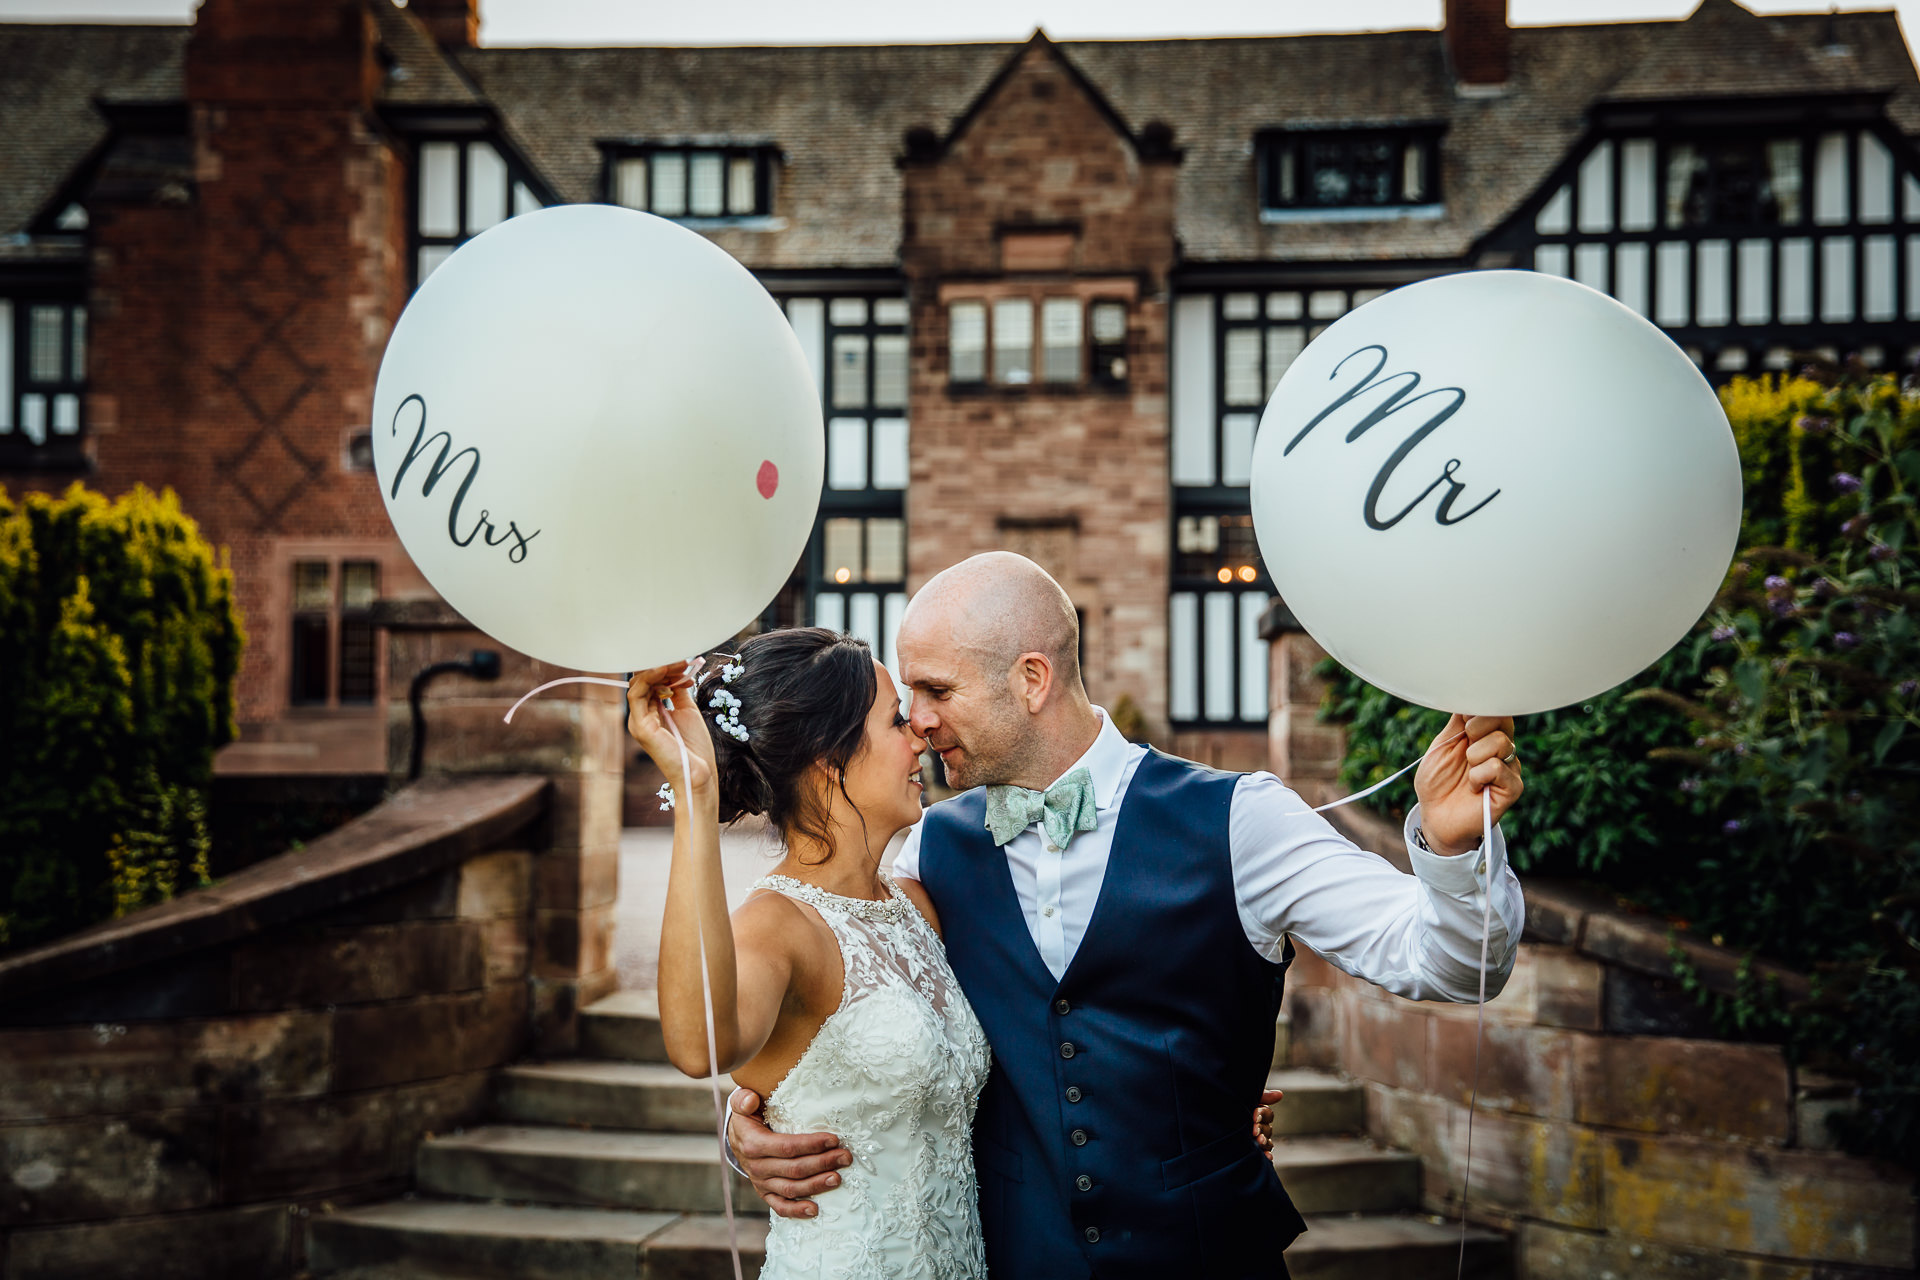 WEDDING PHOTOGRAPHY with mr and mrs balloons at inglewood manor